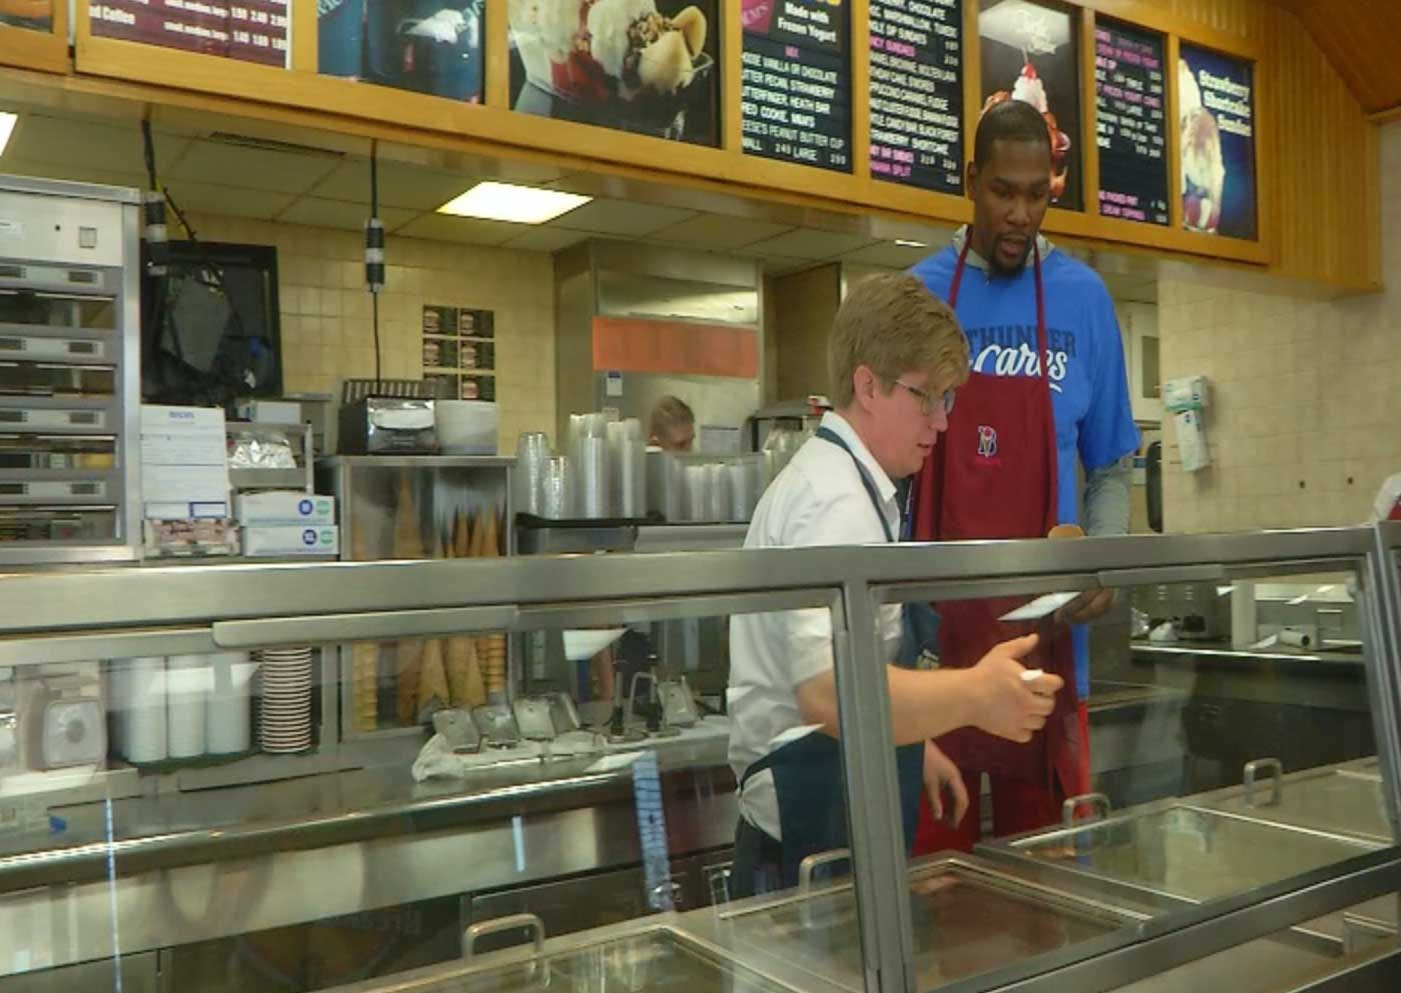 Thunder Players Work Behind The Counter Of Metro Business